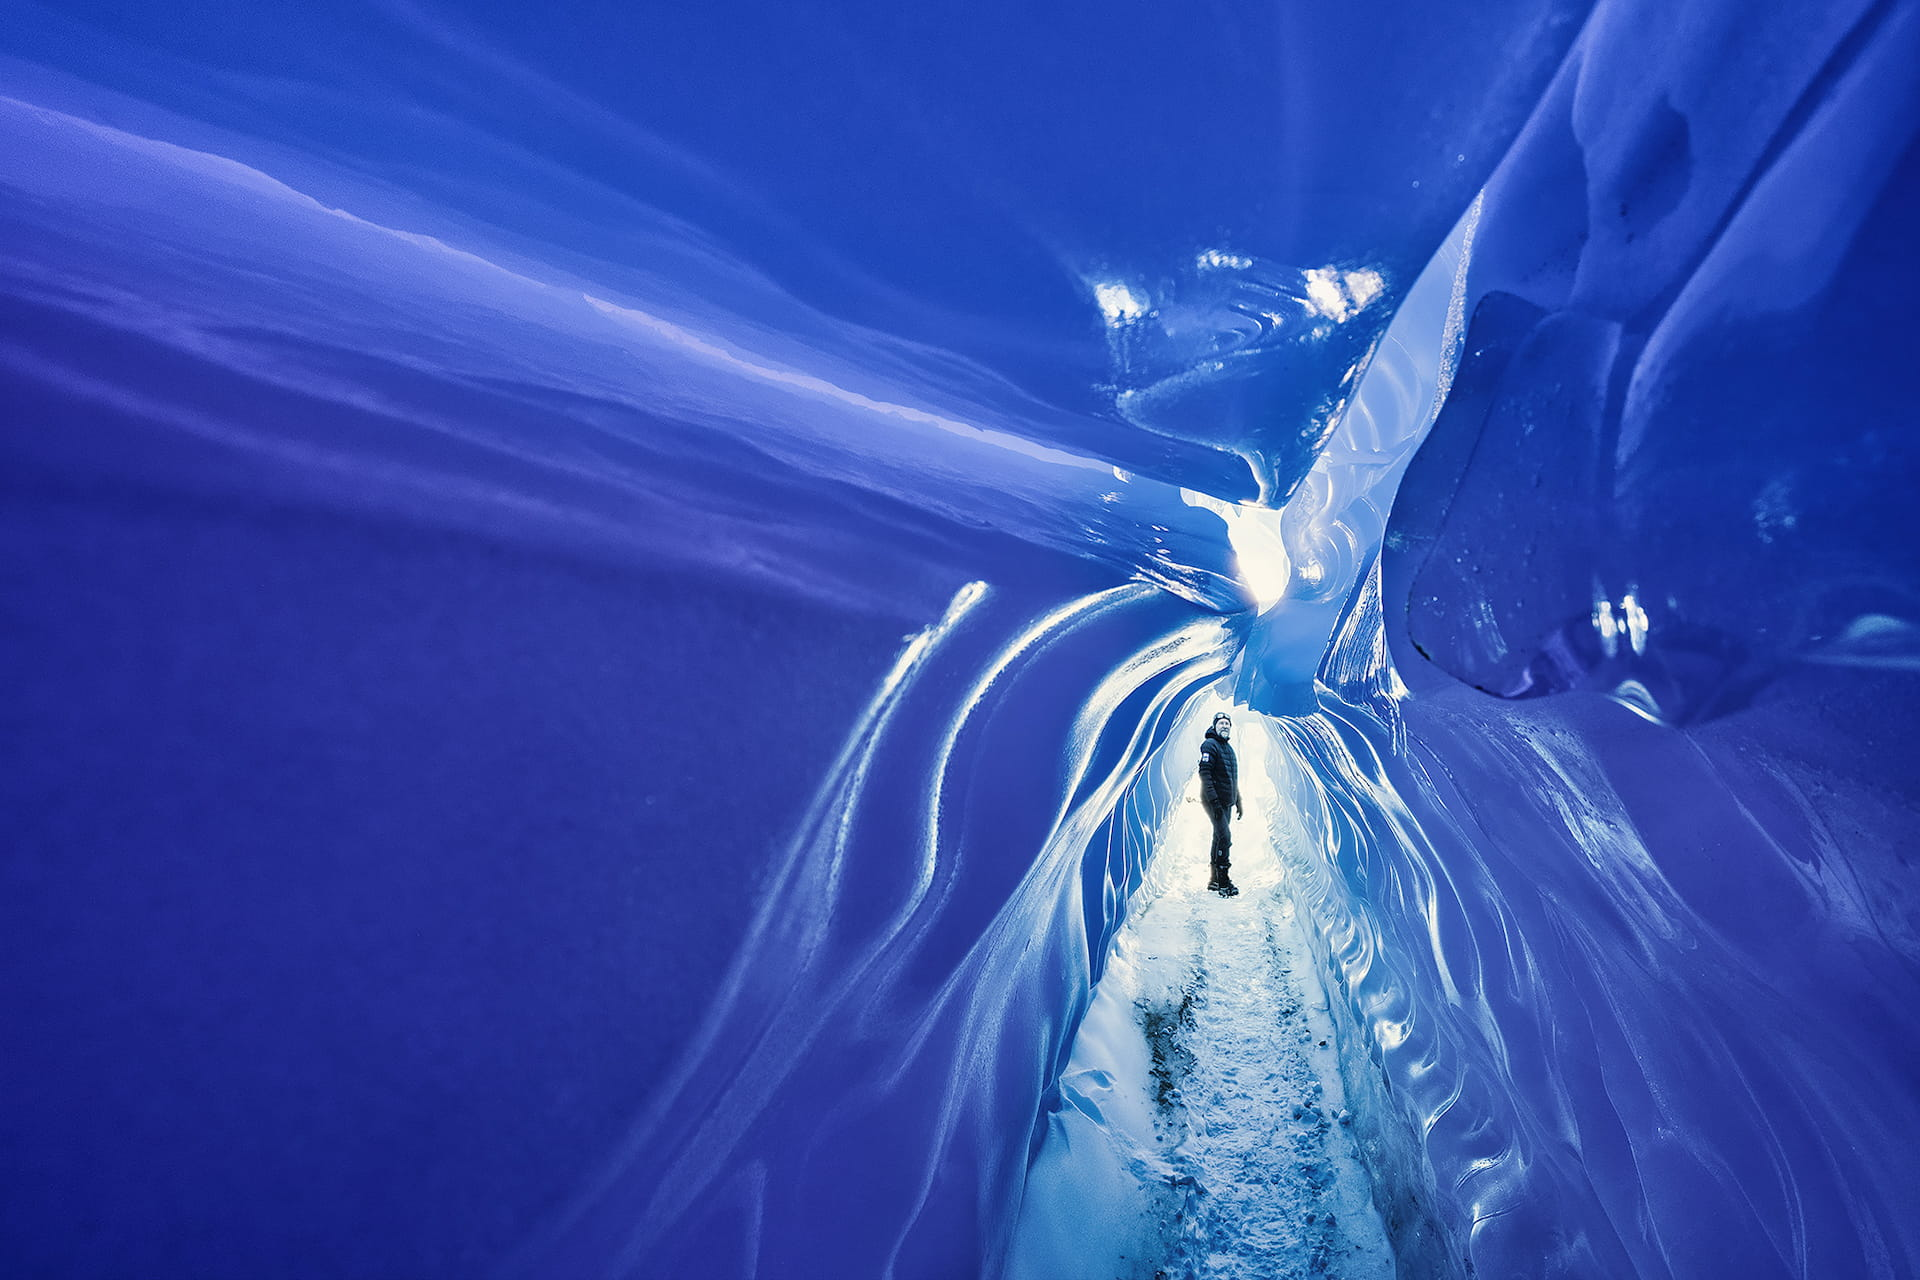 Man At End Of Tunnel White Desert Antarctica, фото